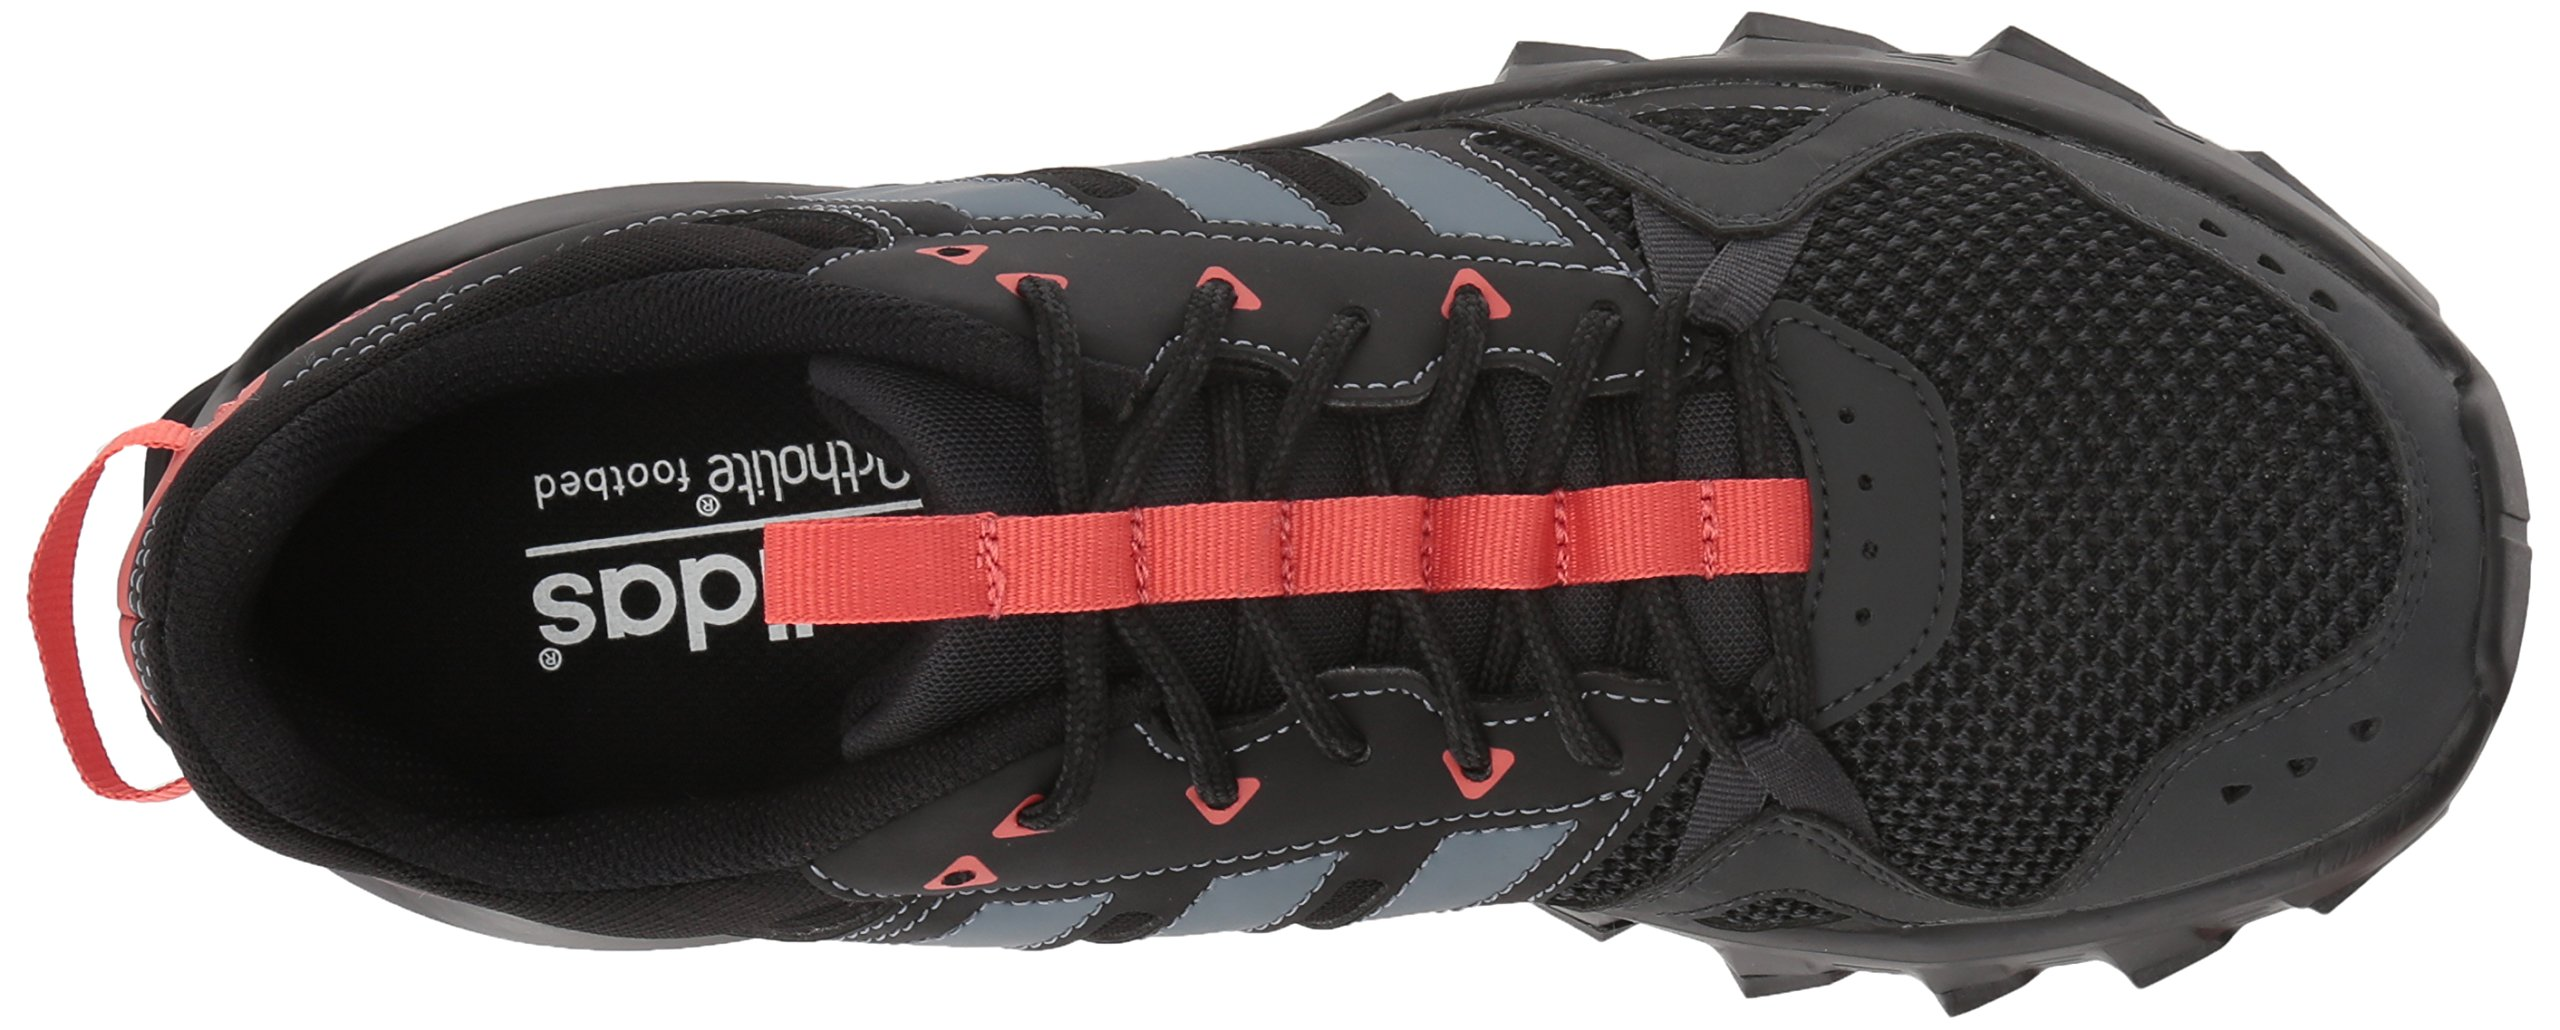 adidas Women's Rockadia w Trail Running Shoe, Carbon/Raw Steel/Trace Scarlet, 6 M US by adidas (Image #8)